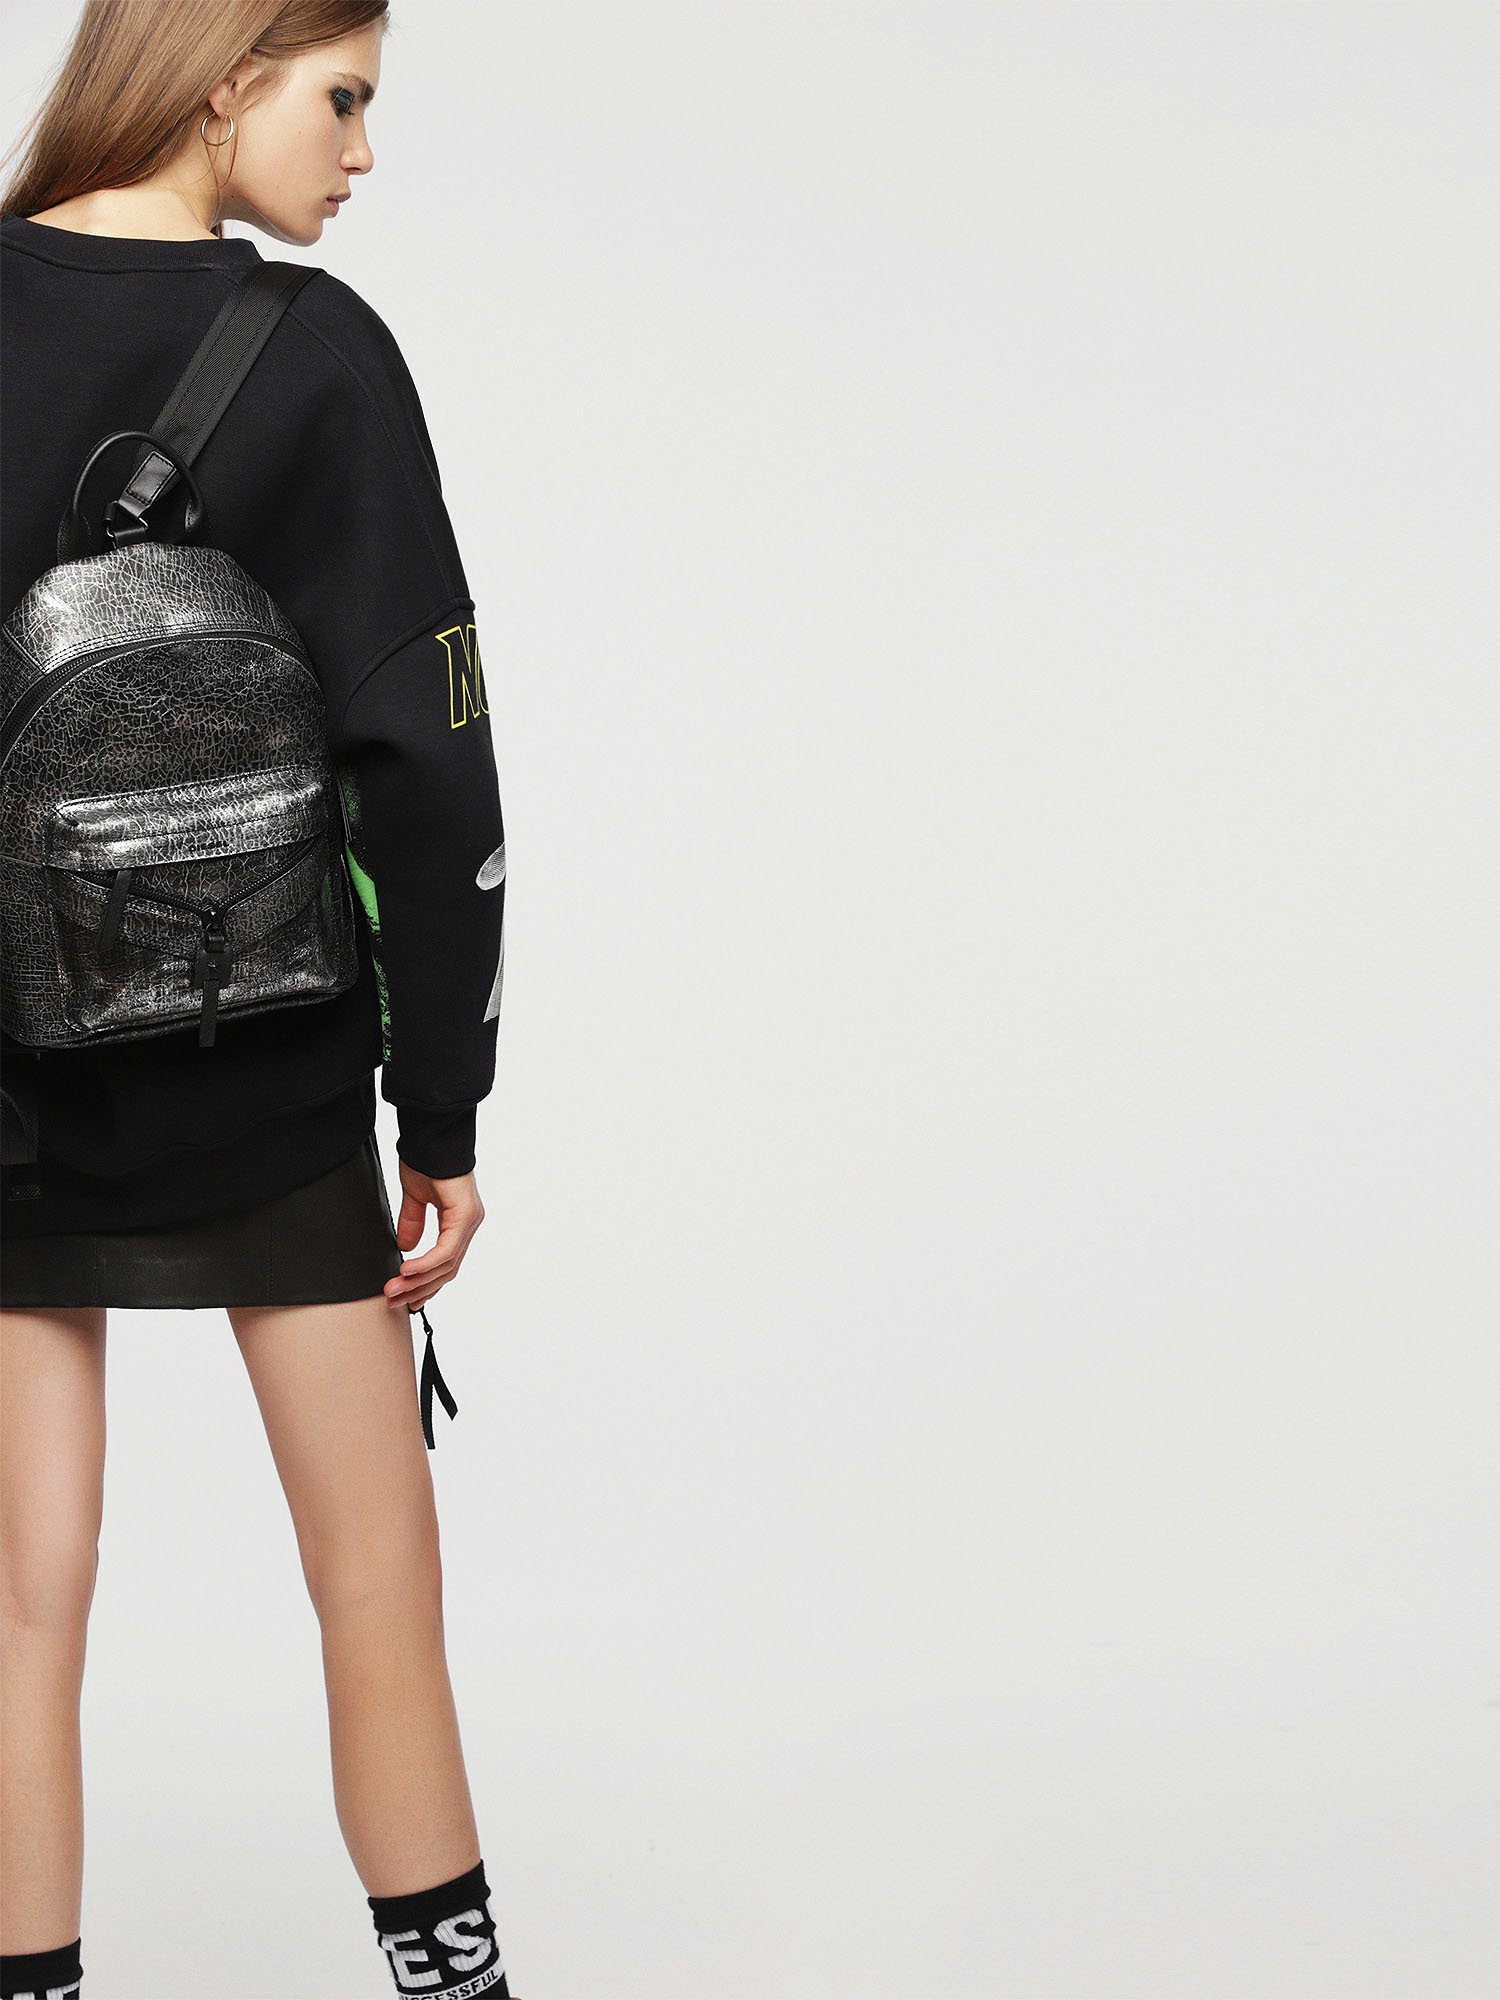 Diesel - LE-ONY,  - Backpacks - Image 5